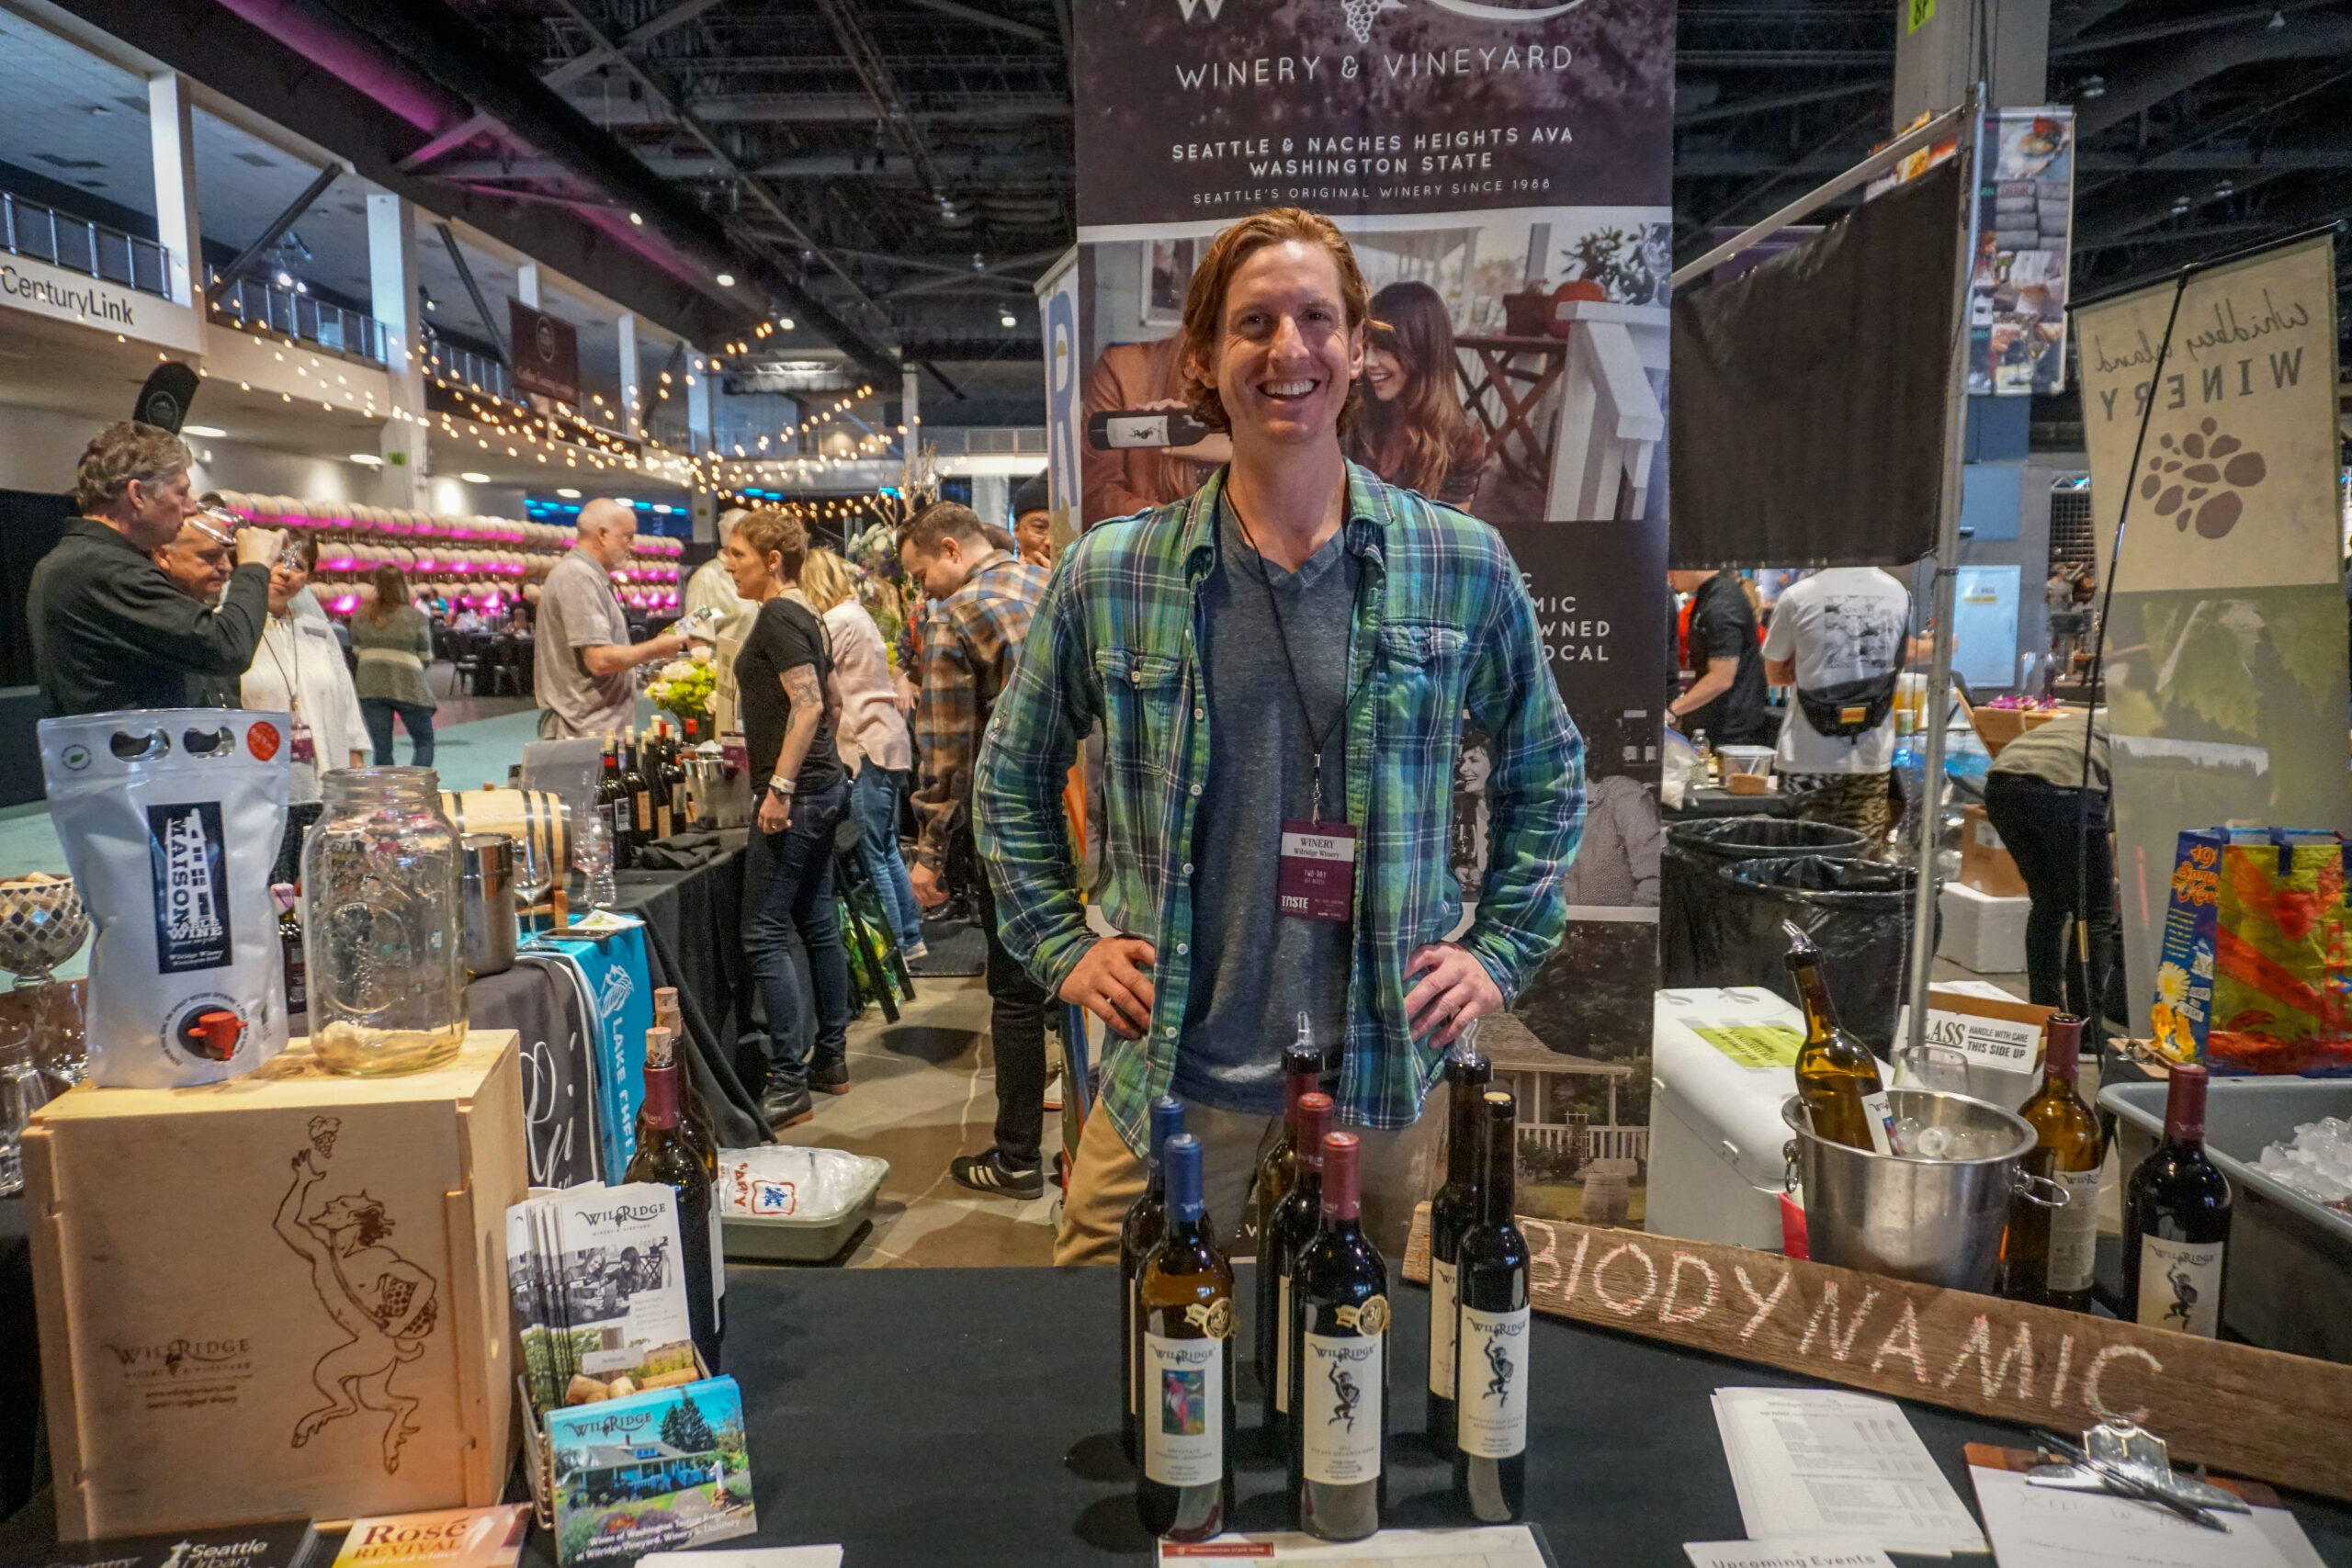 A man earing a blue and green plaid shirt smiles with his hands on his hips in front of a table with bottles of wine. People and more tables are in the background.